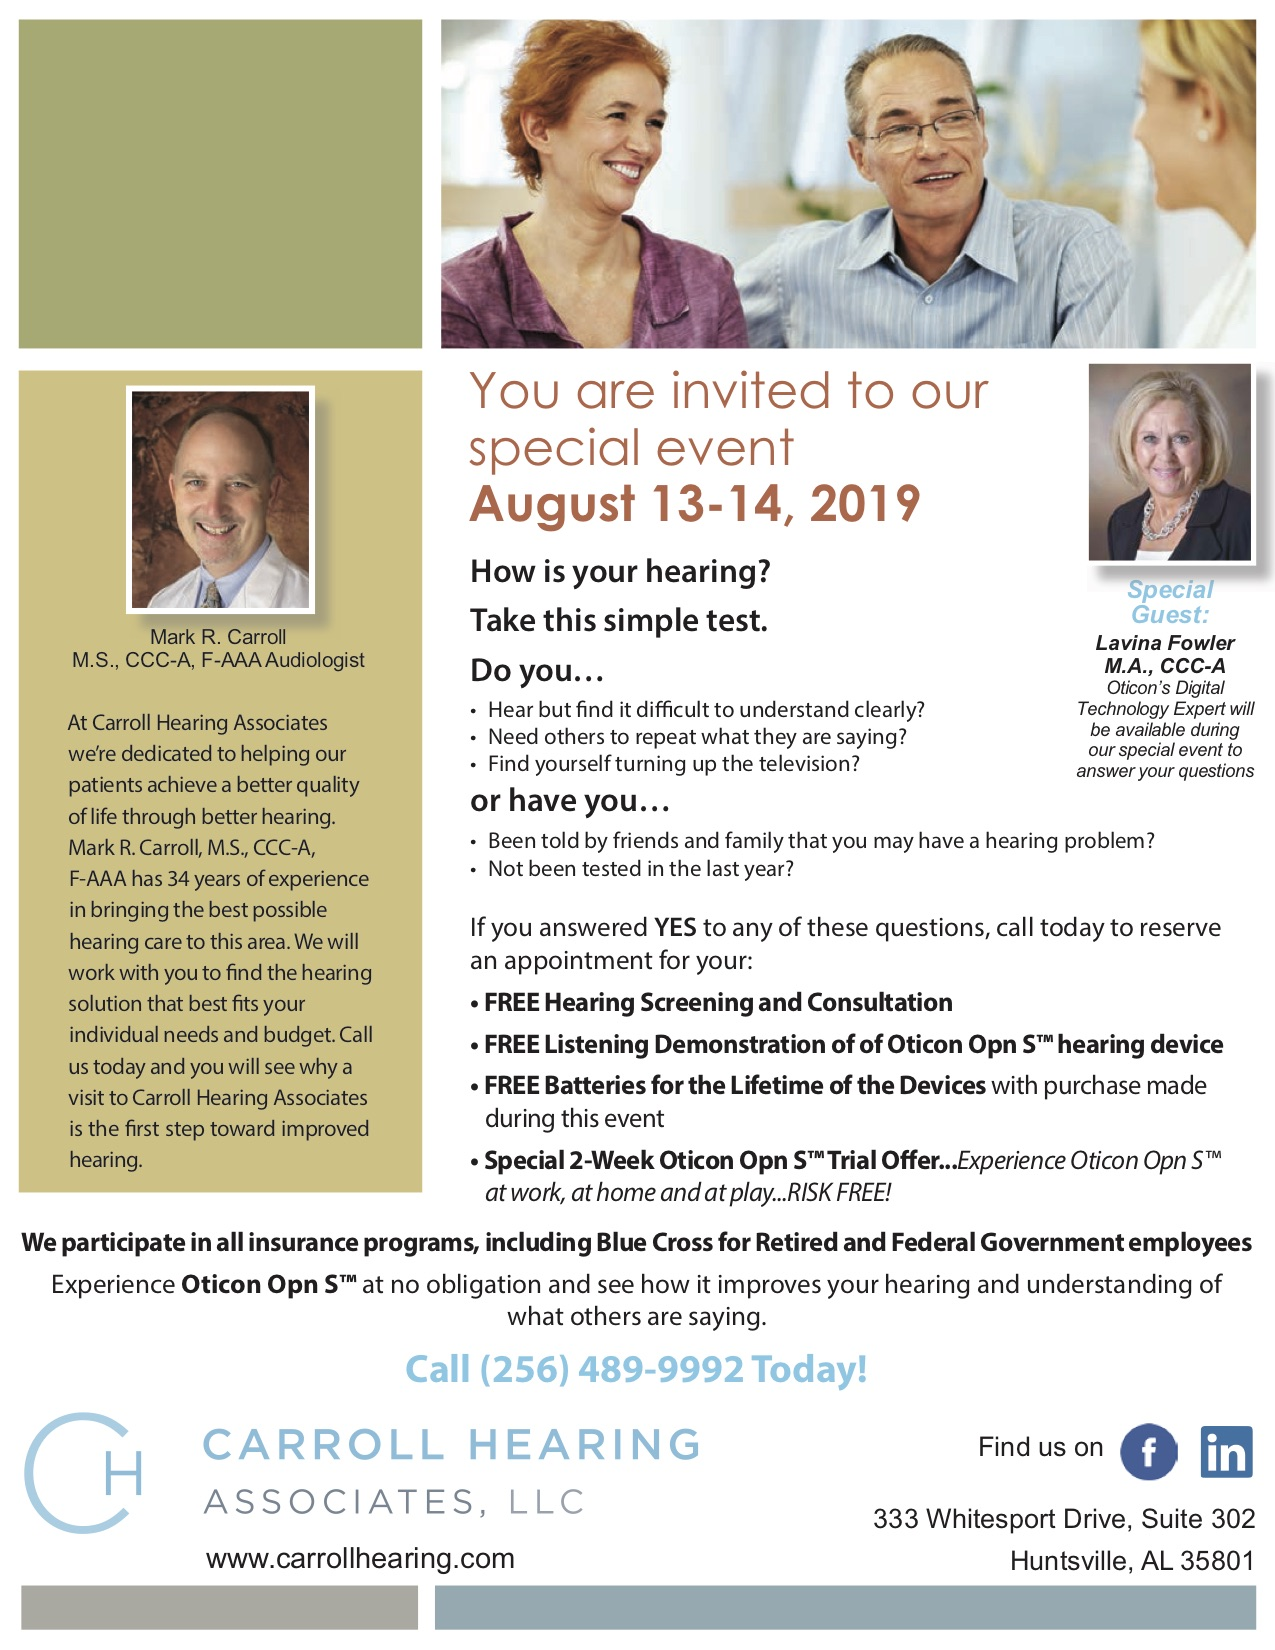 2019-08 Oticon Carroll Hearing AL Wellness flyer.jpg